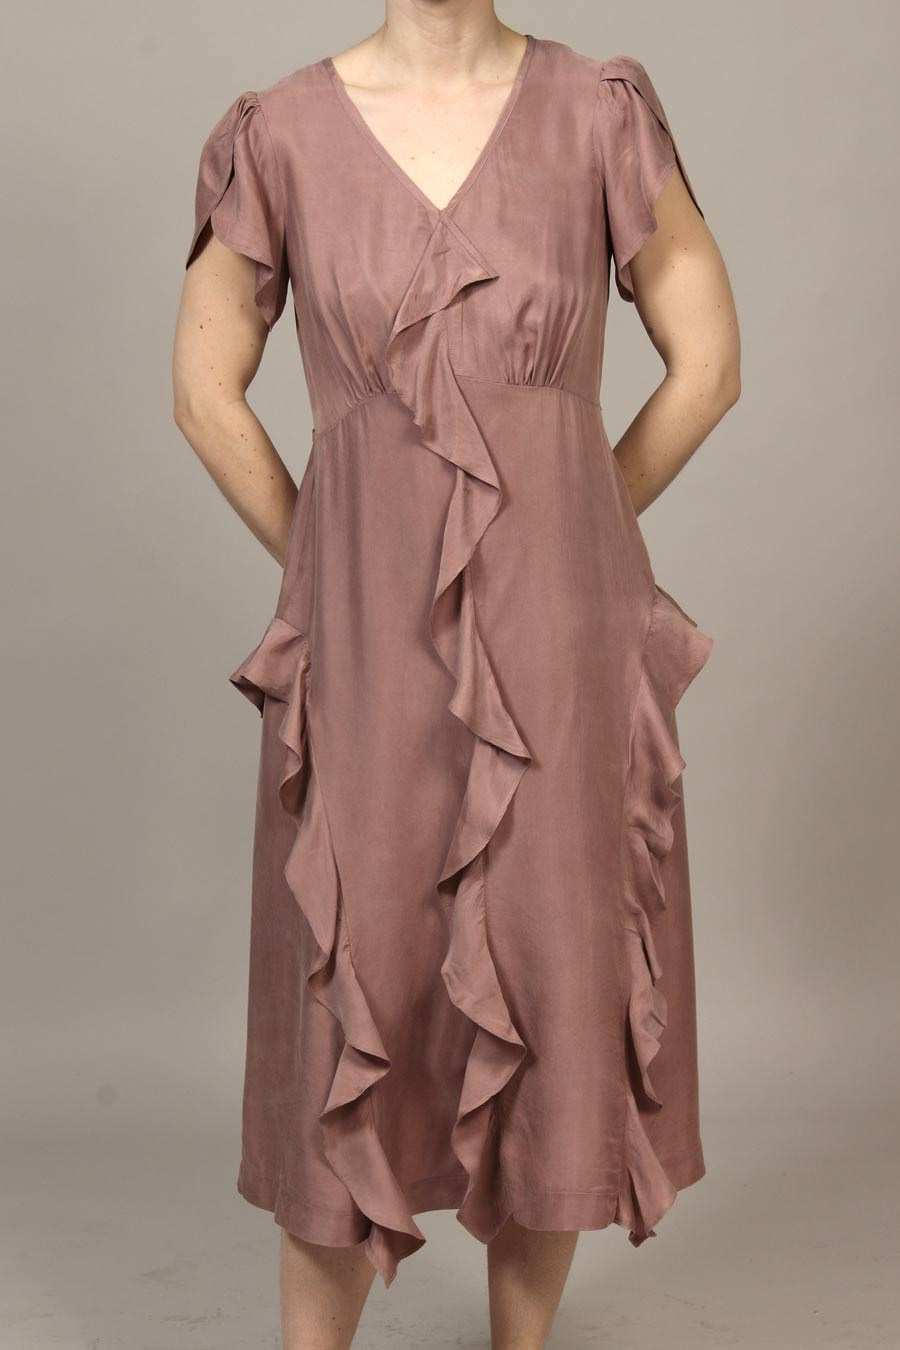 Cupro 'Parachute' - Bloomfield Dress - Dusty Rose - xsm, sml, med, xlg